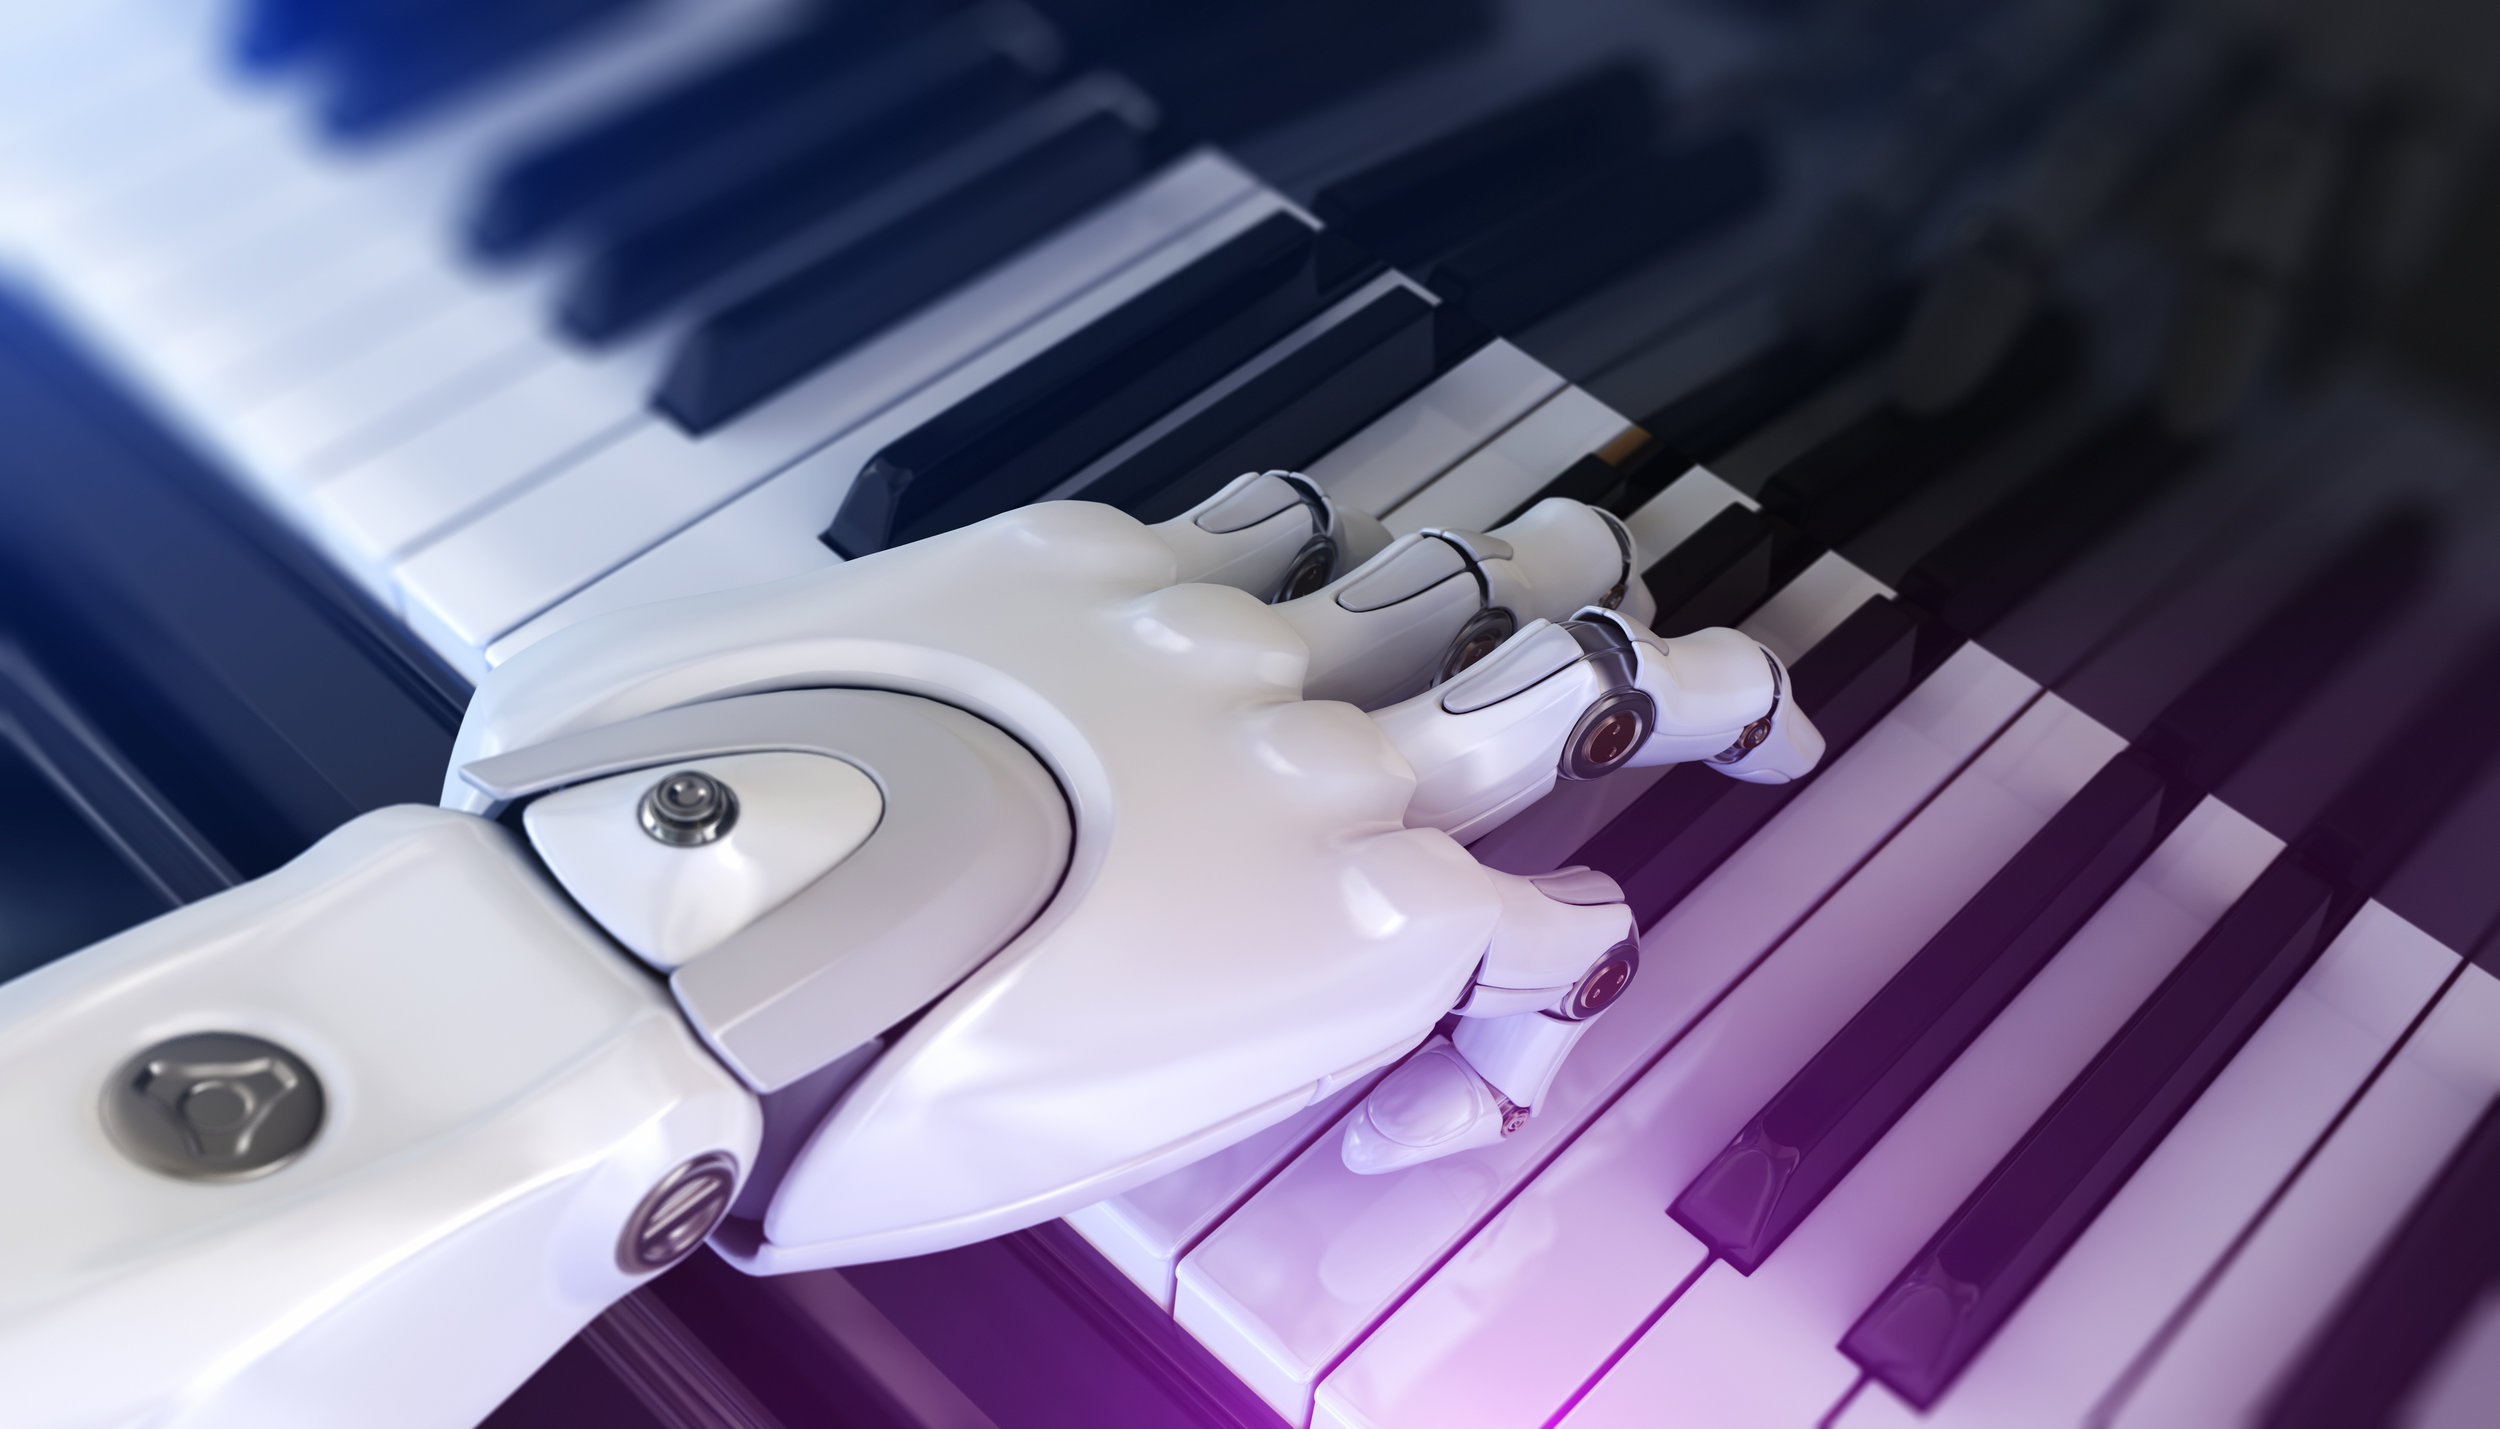 robot-plays-the-piano-PPUW73B.jpg